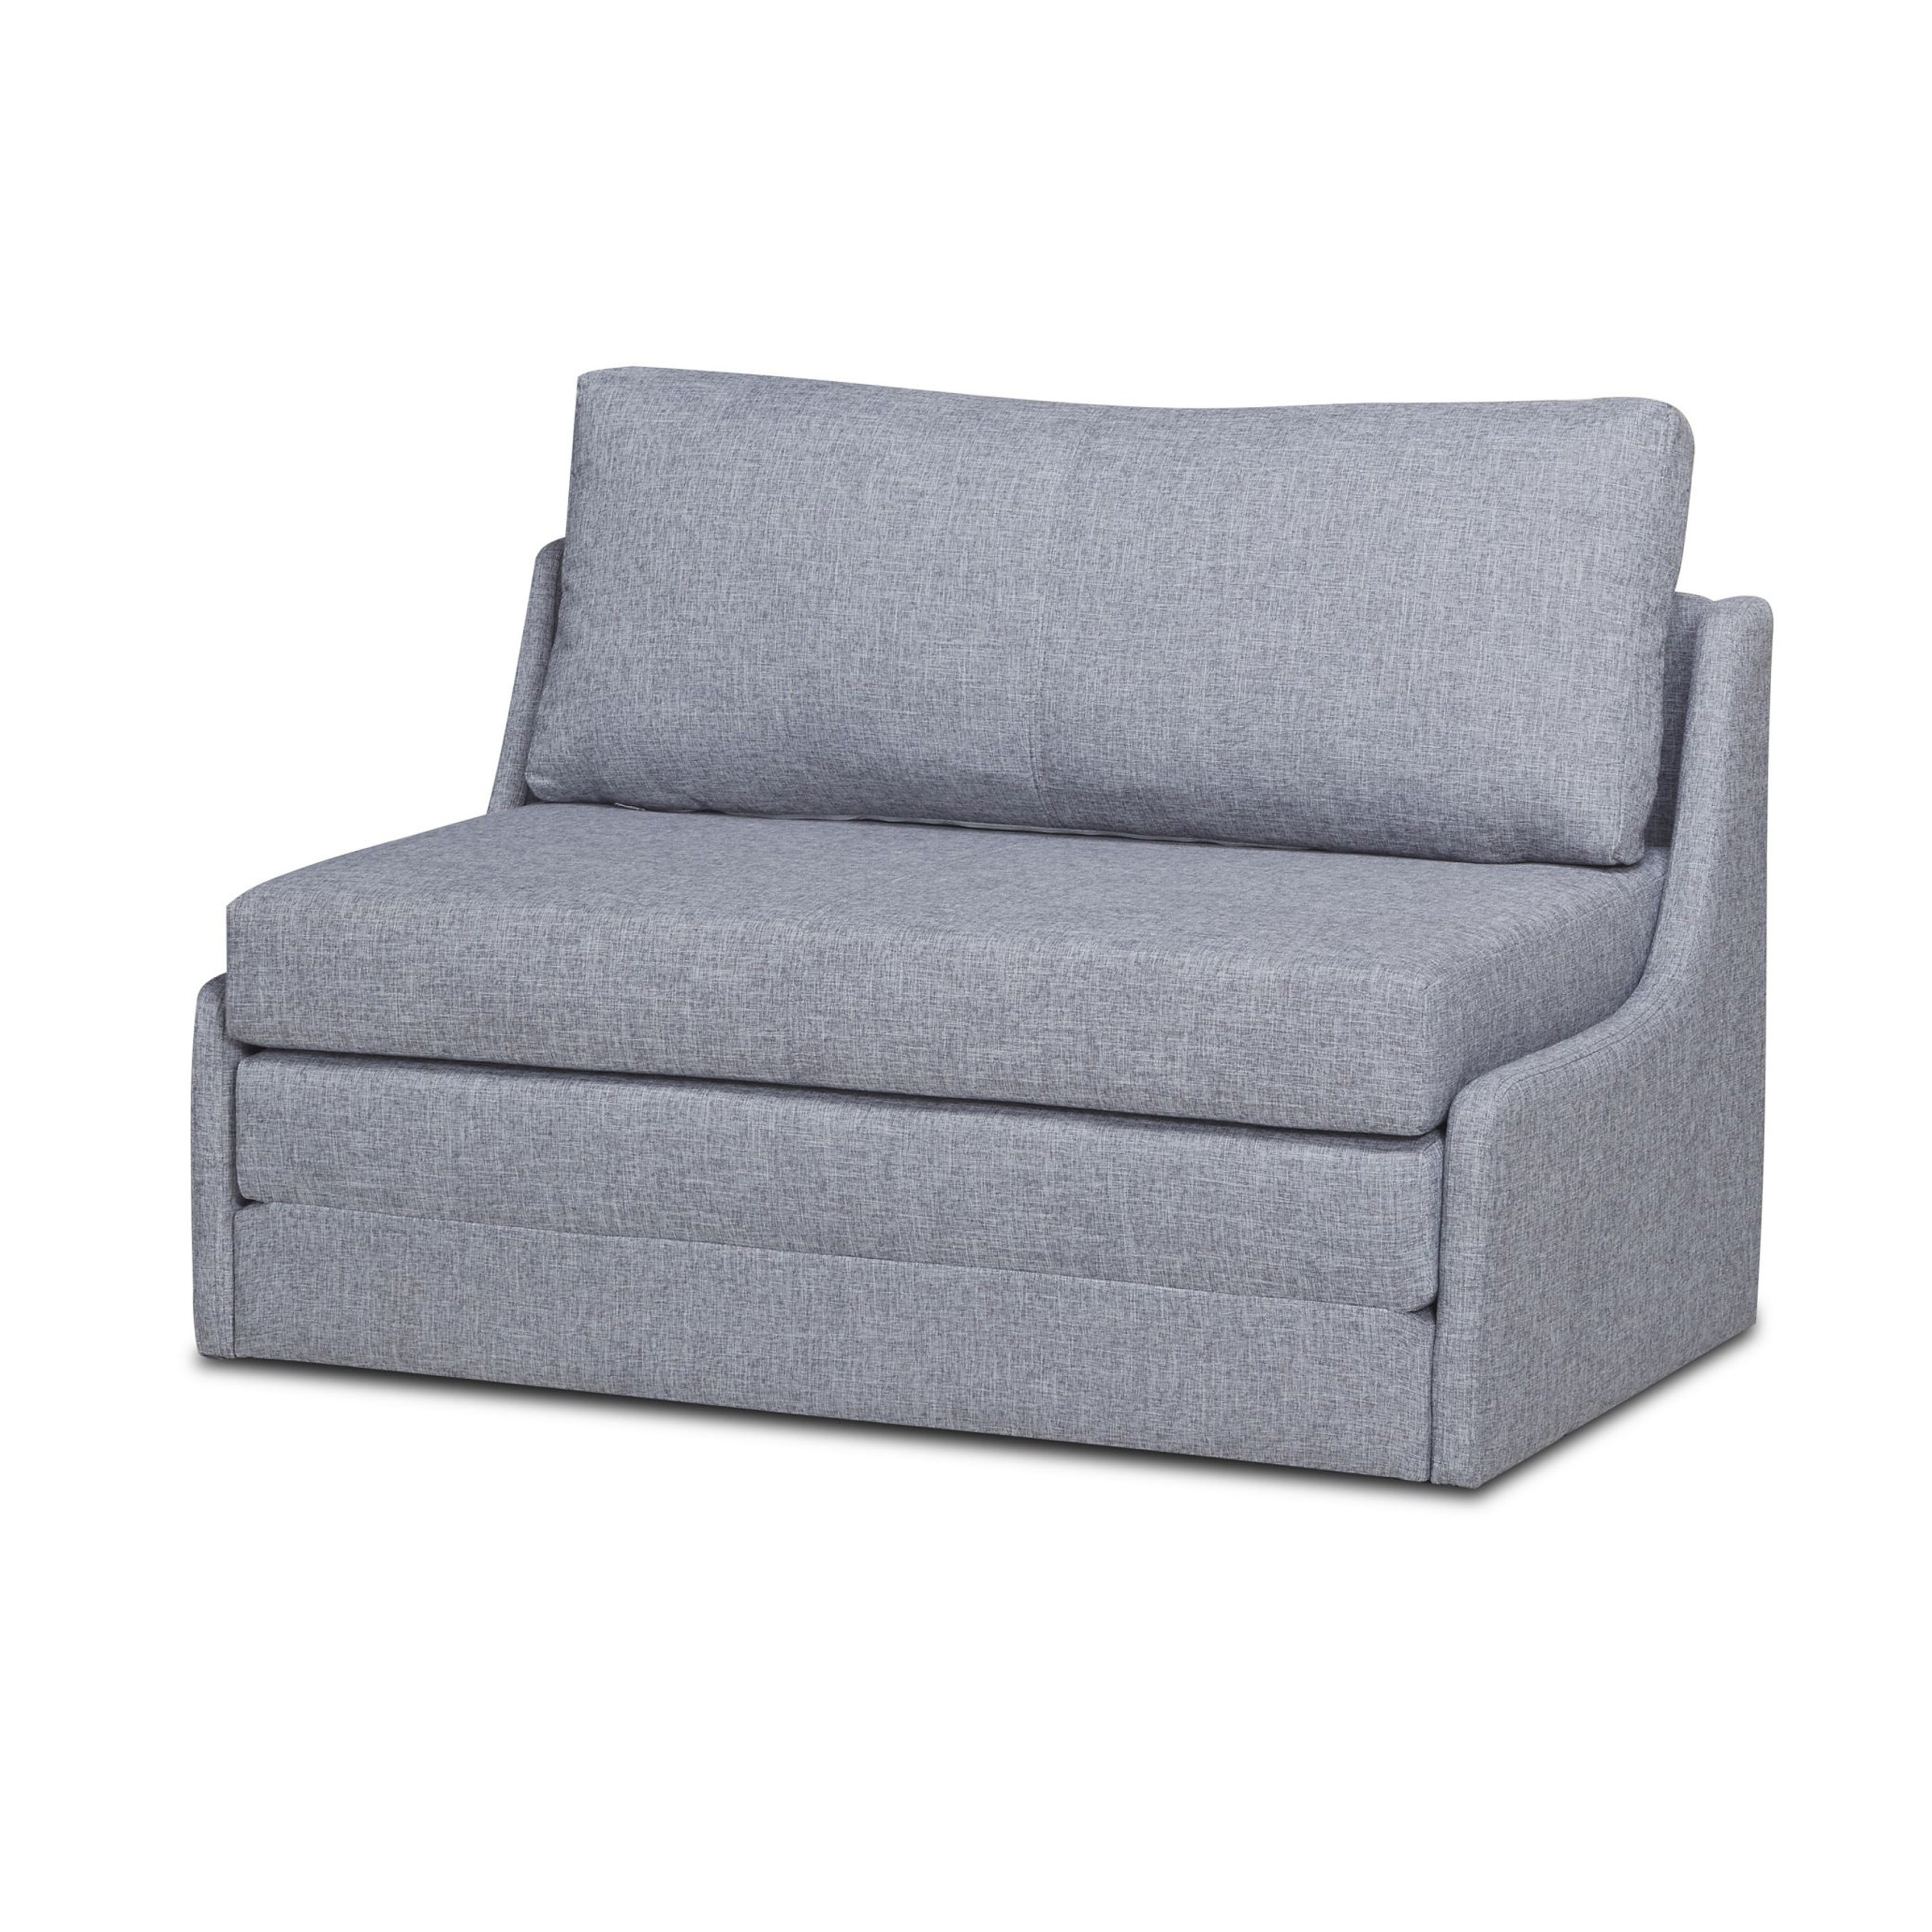 with sofas small convertible wooden bed cushions futon of full sleeper sofa size loveseat storage set leather chaise sectionals